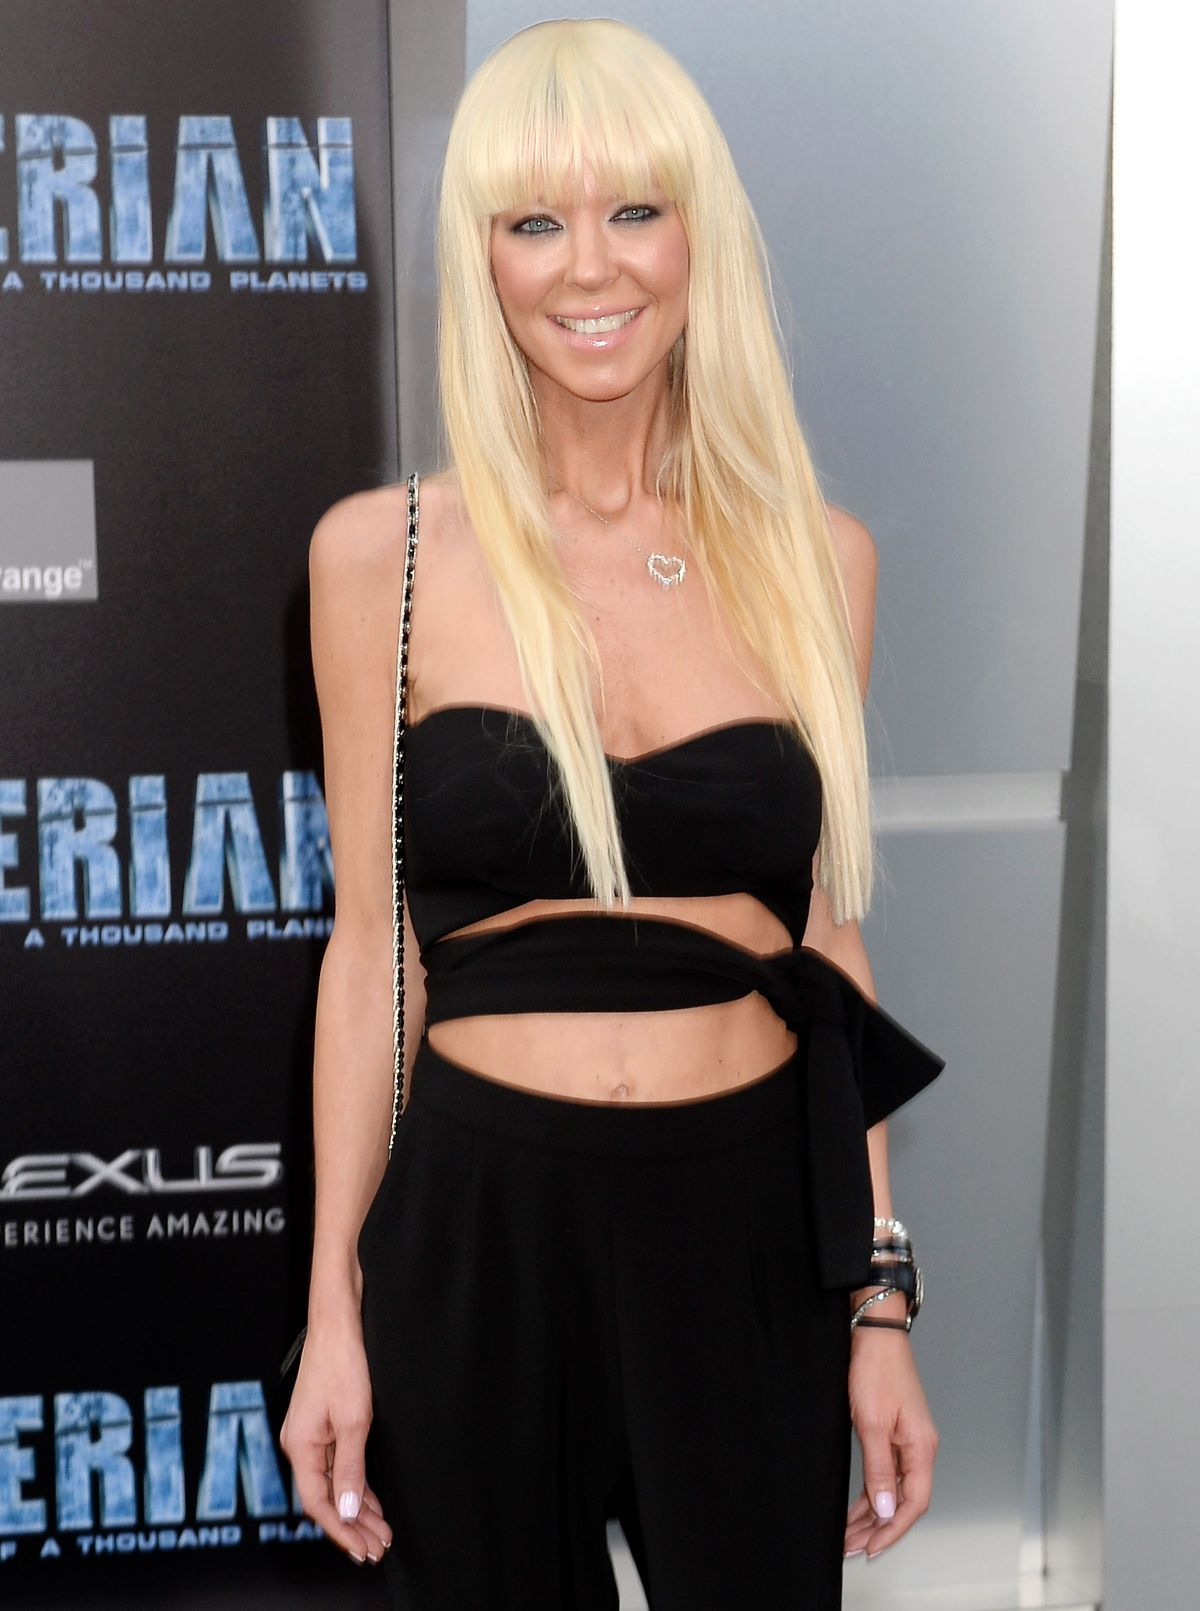 Tara Reid At Valerian And The City Of A Thousand Planet